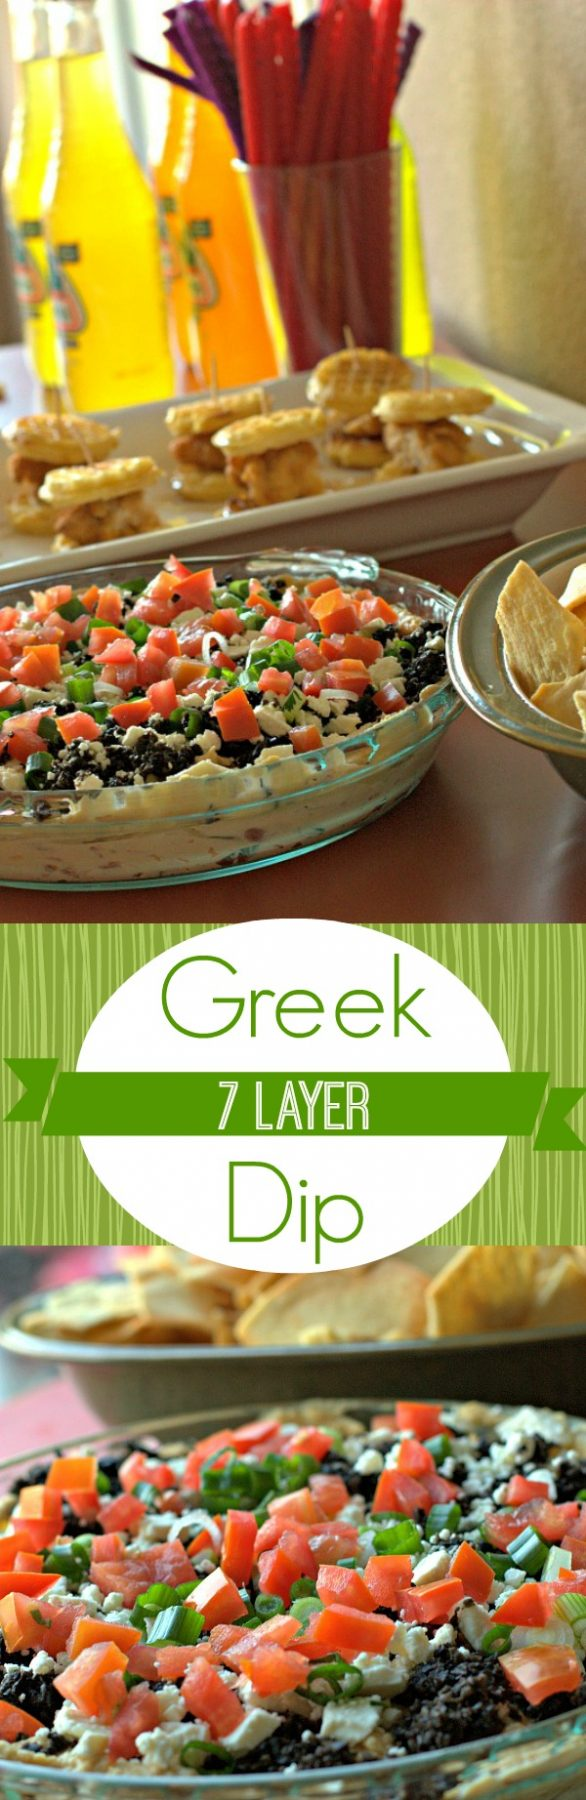 A collage of 7 layer Greek Dip with text overlay for social media